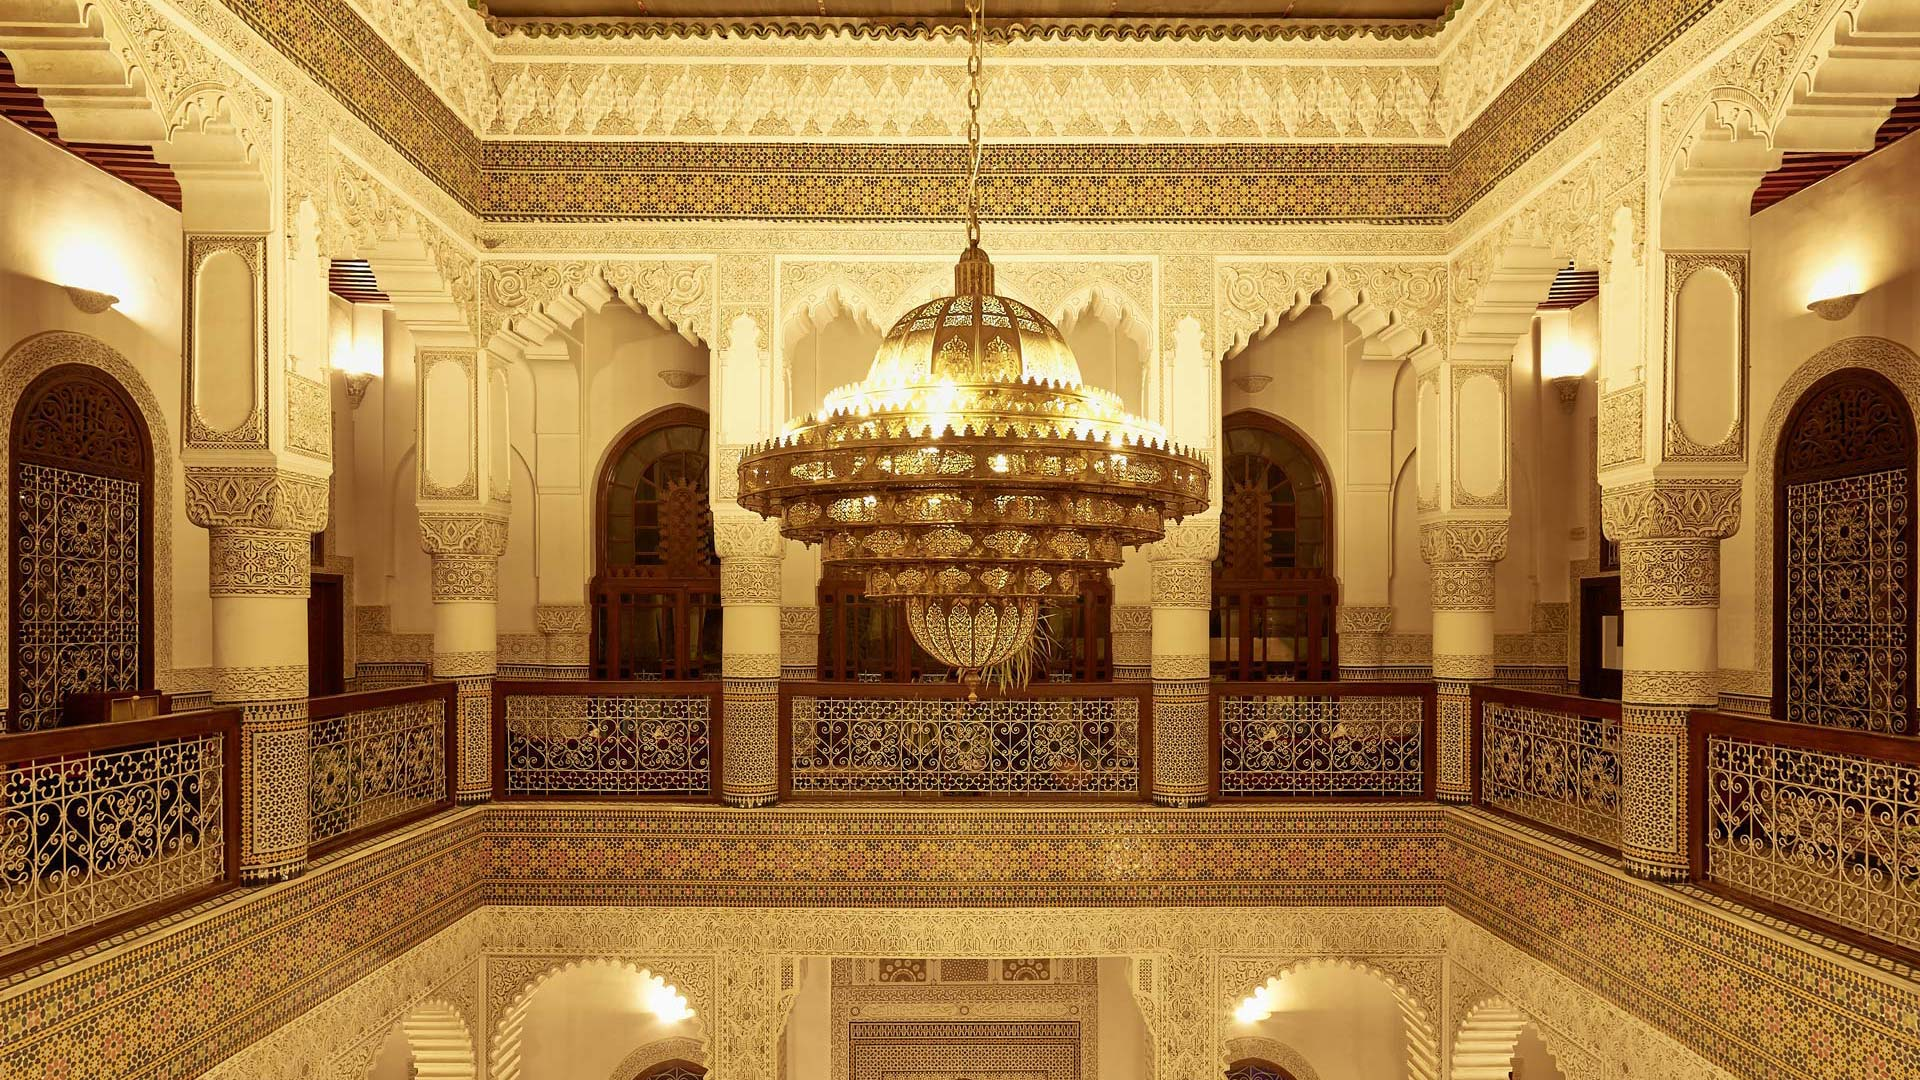 riad-fes-morocco-chandelier-large